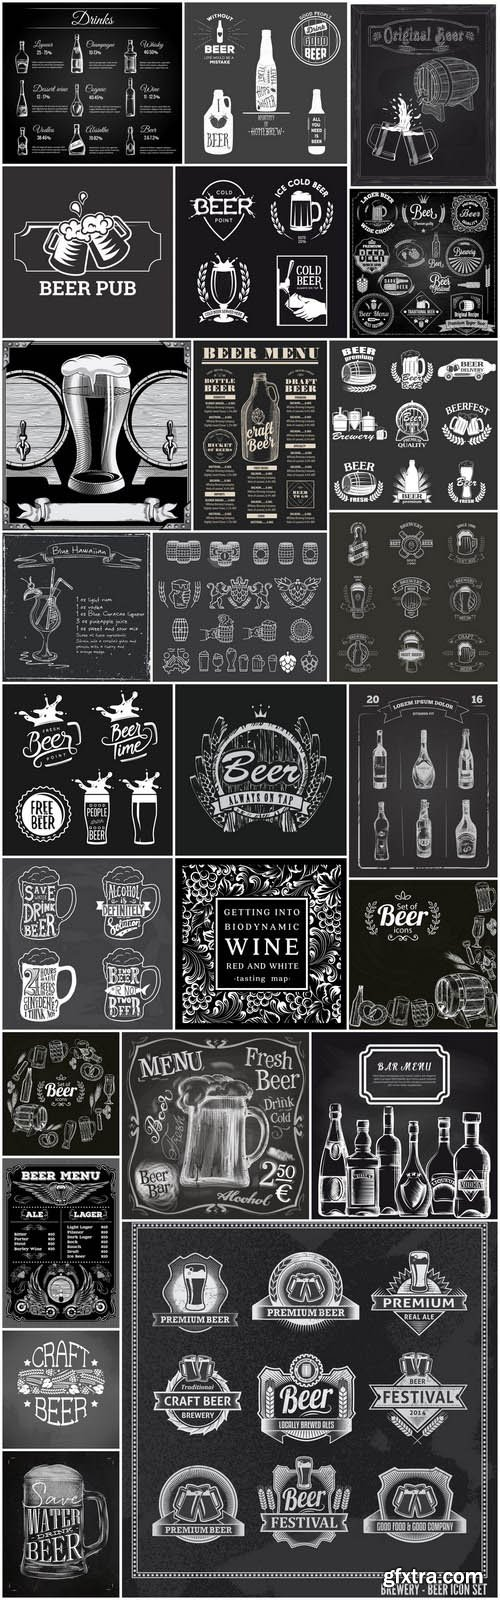 Beer Wine Whiskey Chalkboard - 25 Vector